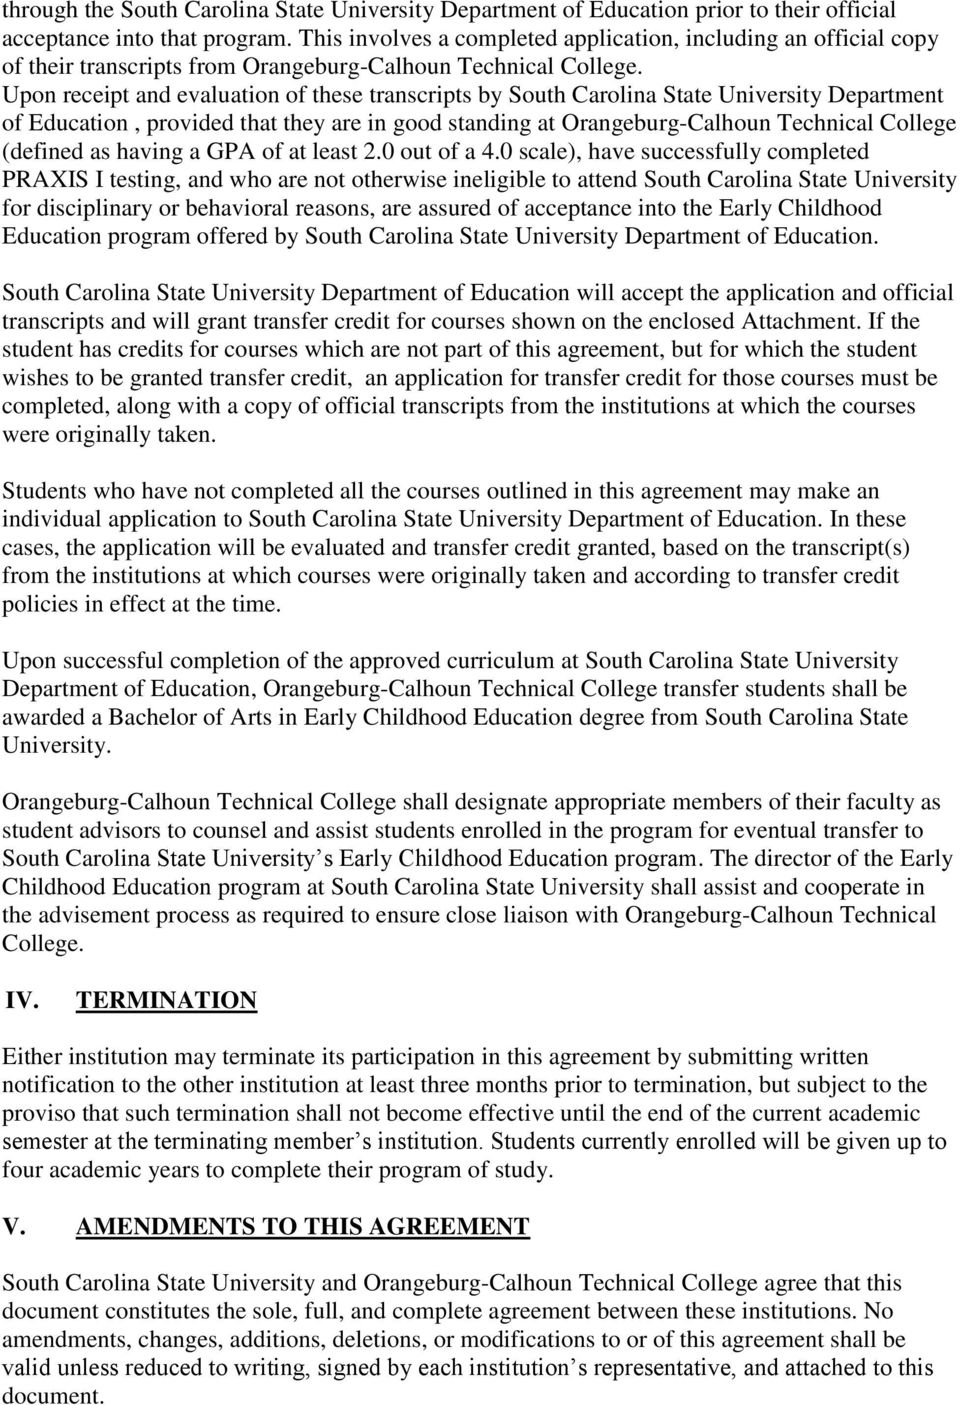 Upon receipt and evaluation of these transcripts by South Carolina State University Department of Education, provided that they are in good standing at Orangeburg-Calhoun Technical College (defined